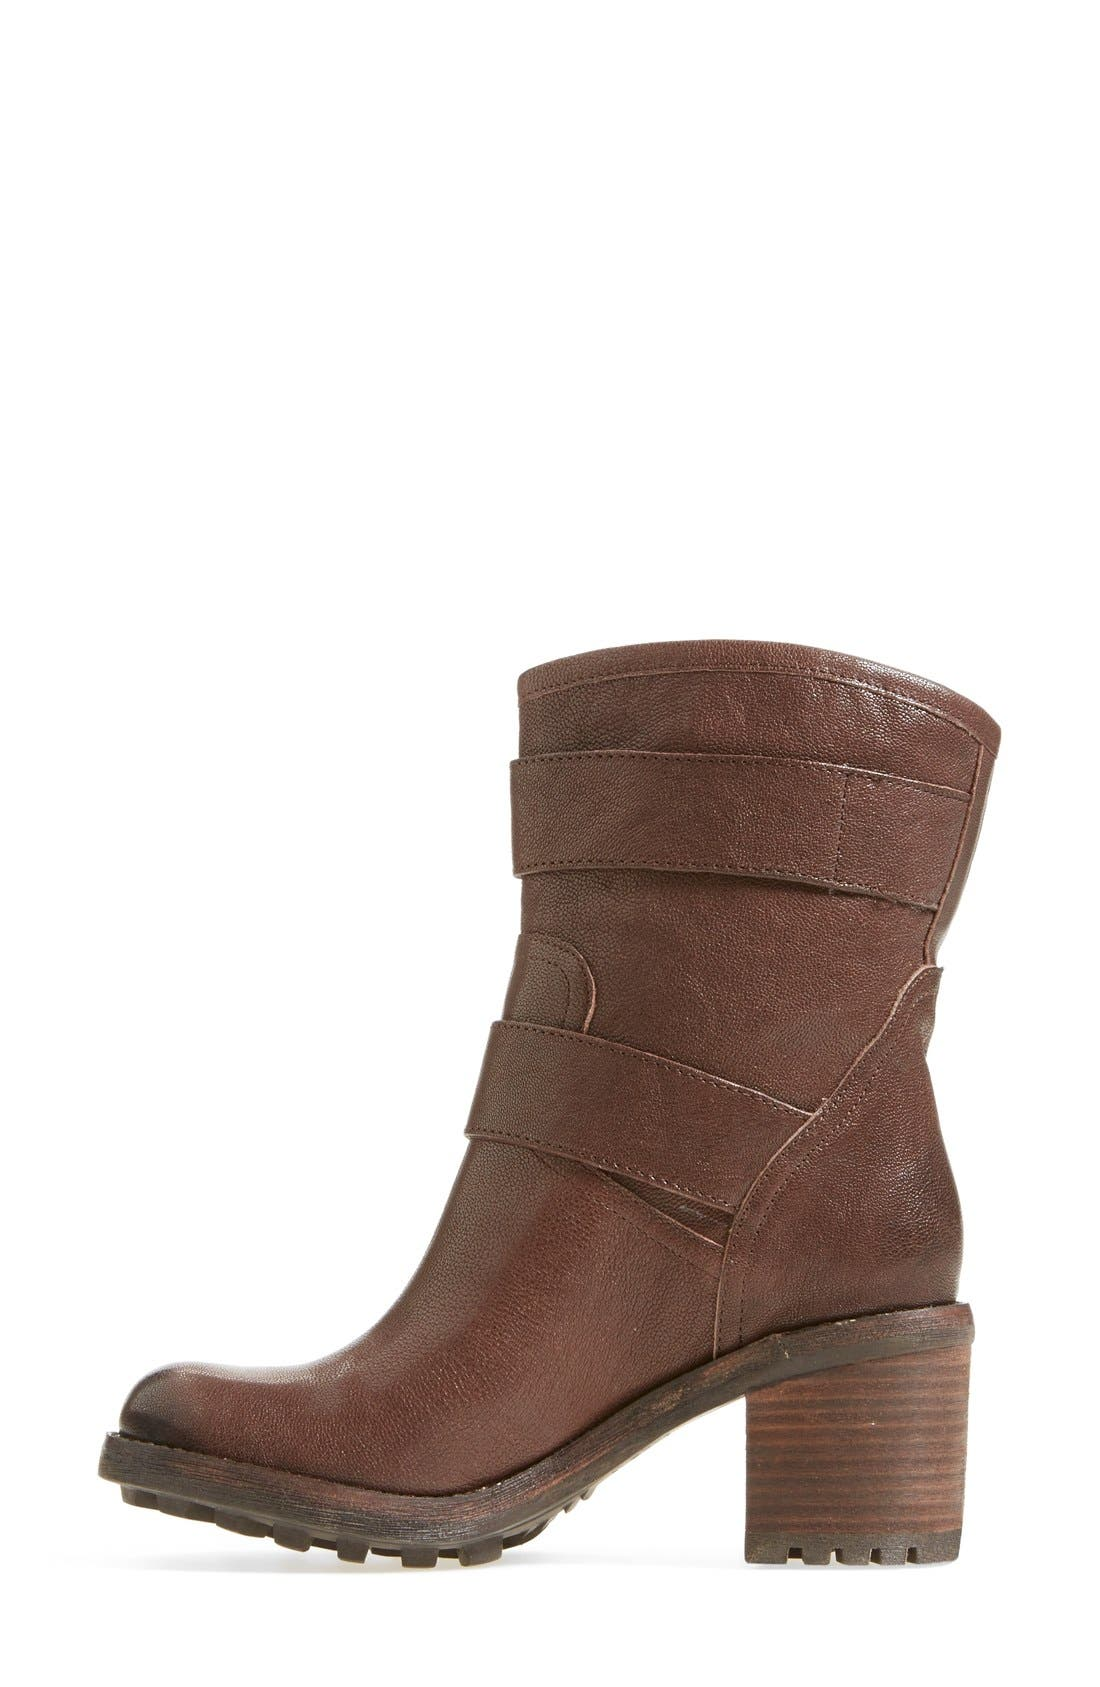 'Troy' Moto Boot,                             Alternate thumbnail 6, color,                             Dark Brown Leather